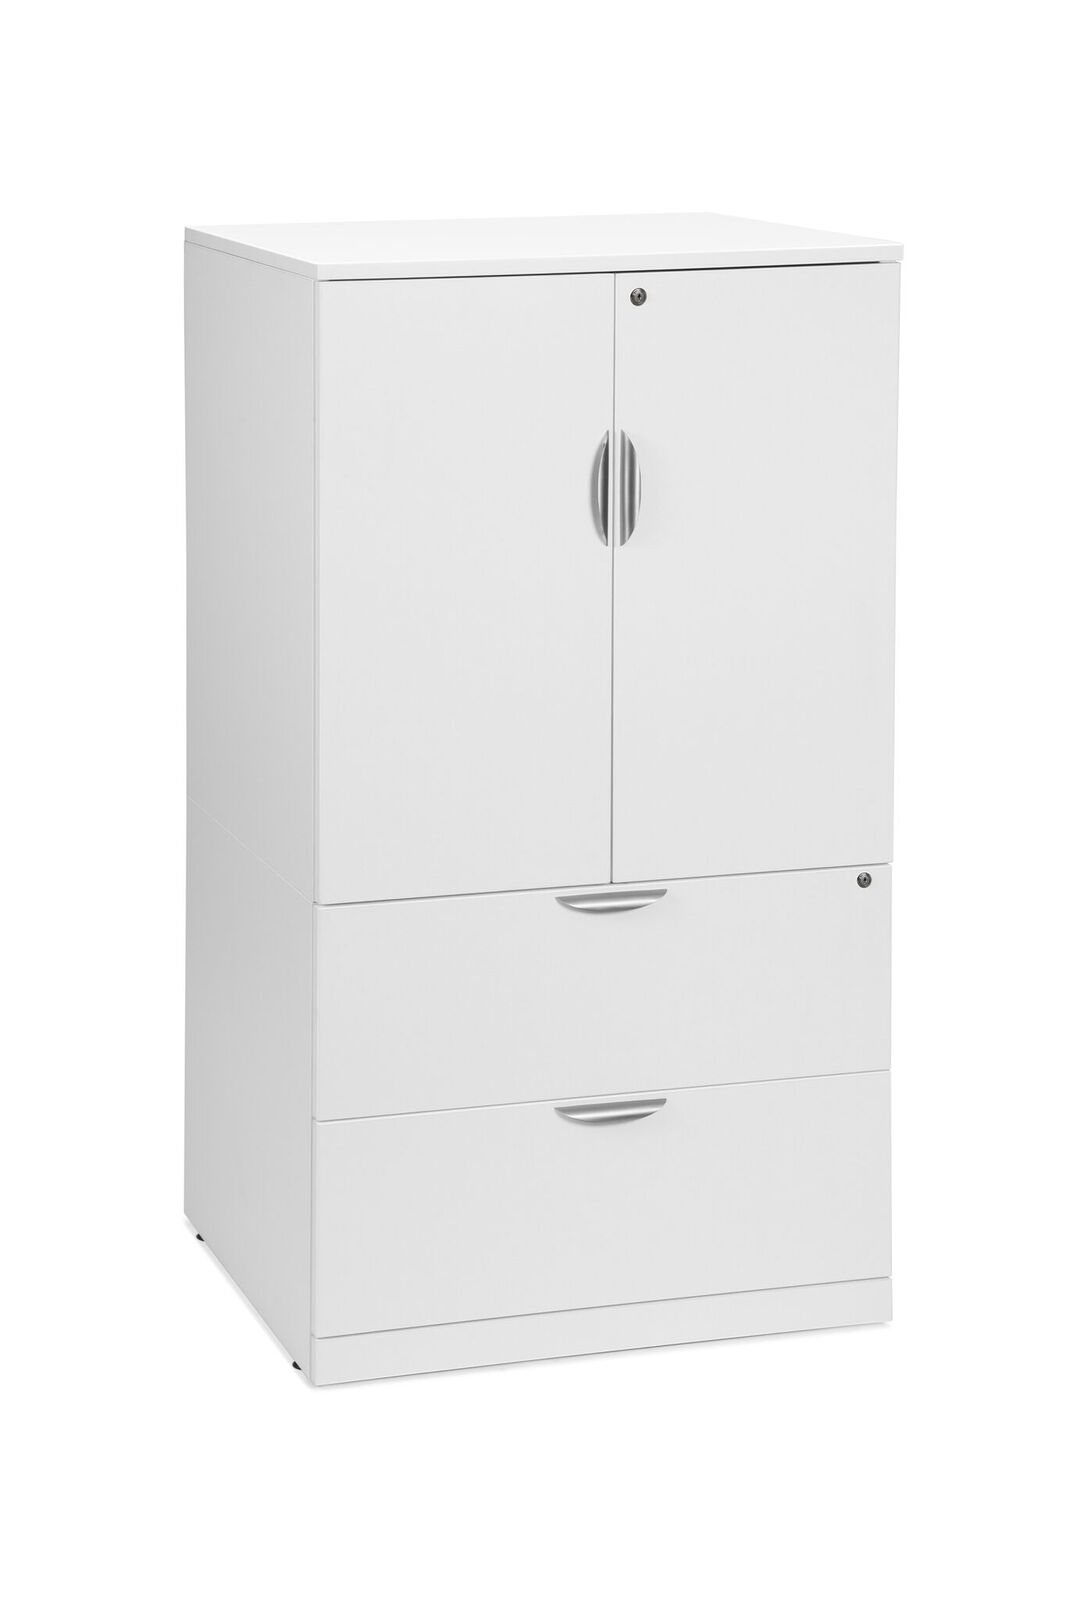 Maple Storage Cabinet Cycon Office Systems Rental Equipment Furniture For Sale